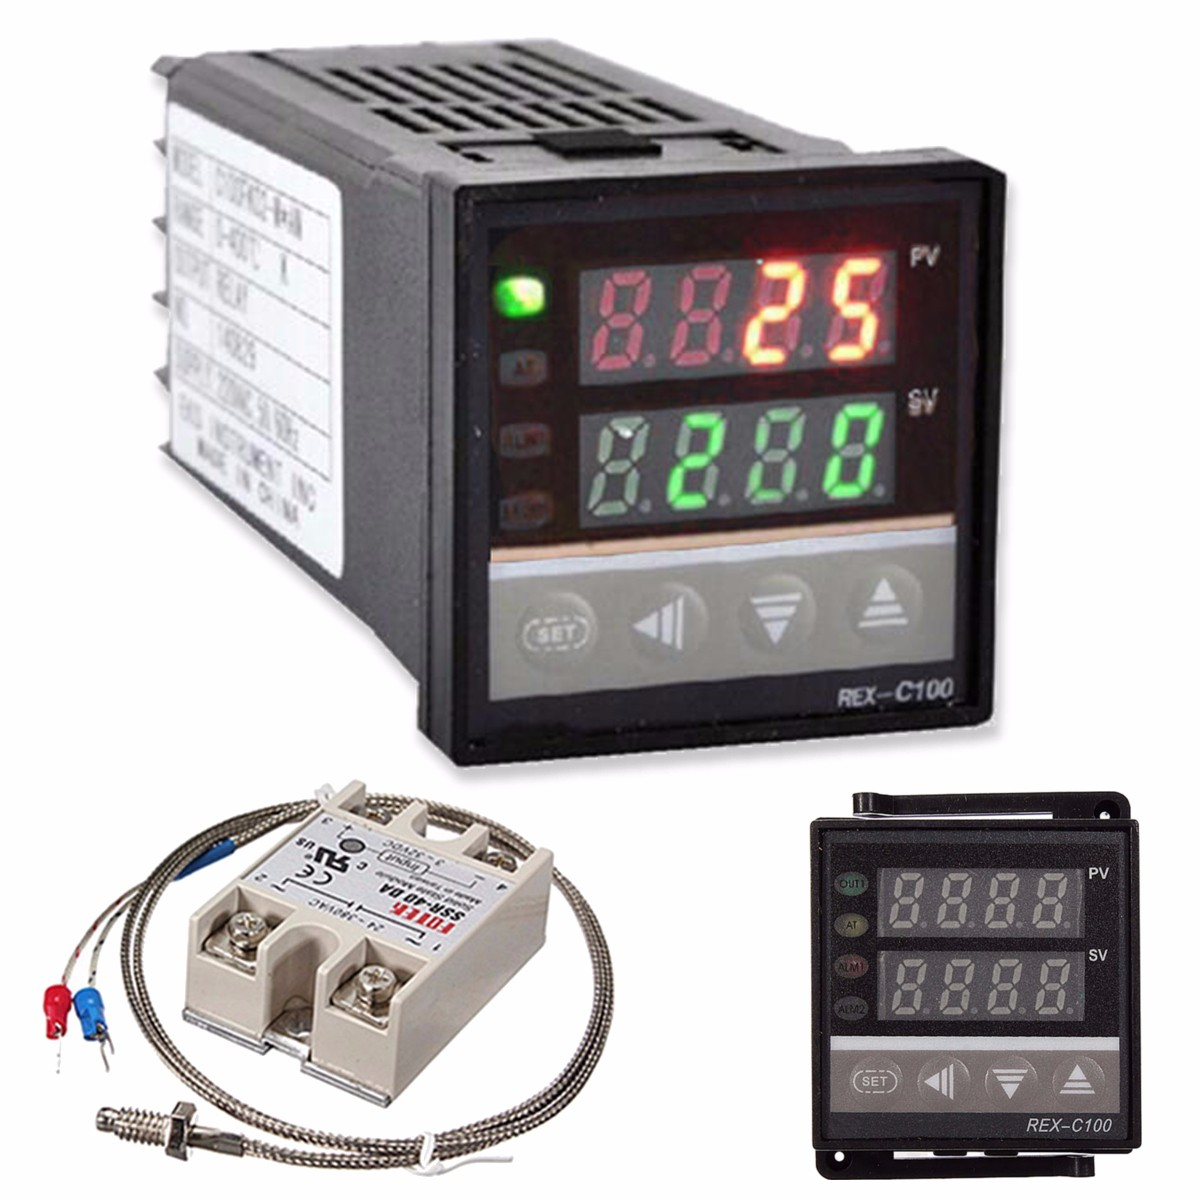 REX-C100 220V Digital PID Temperature Controller Kit